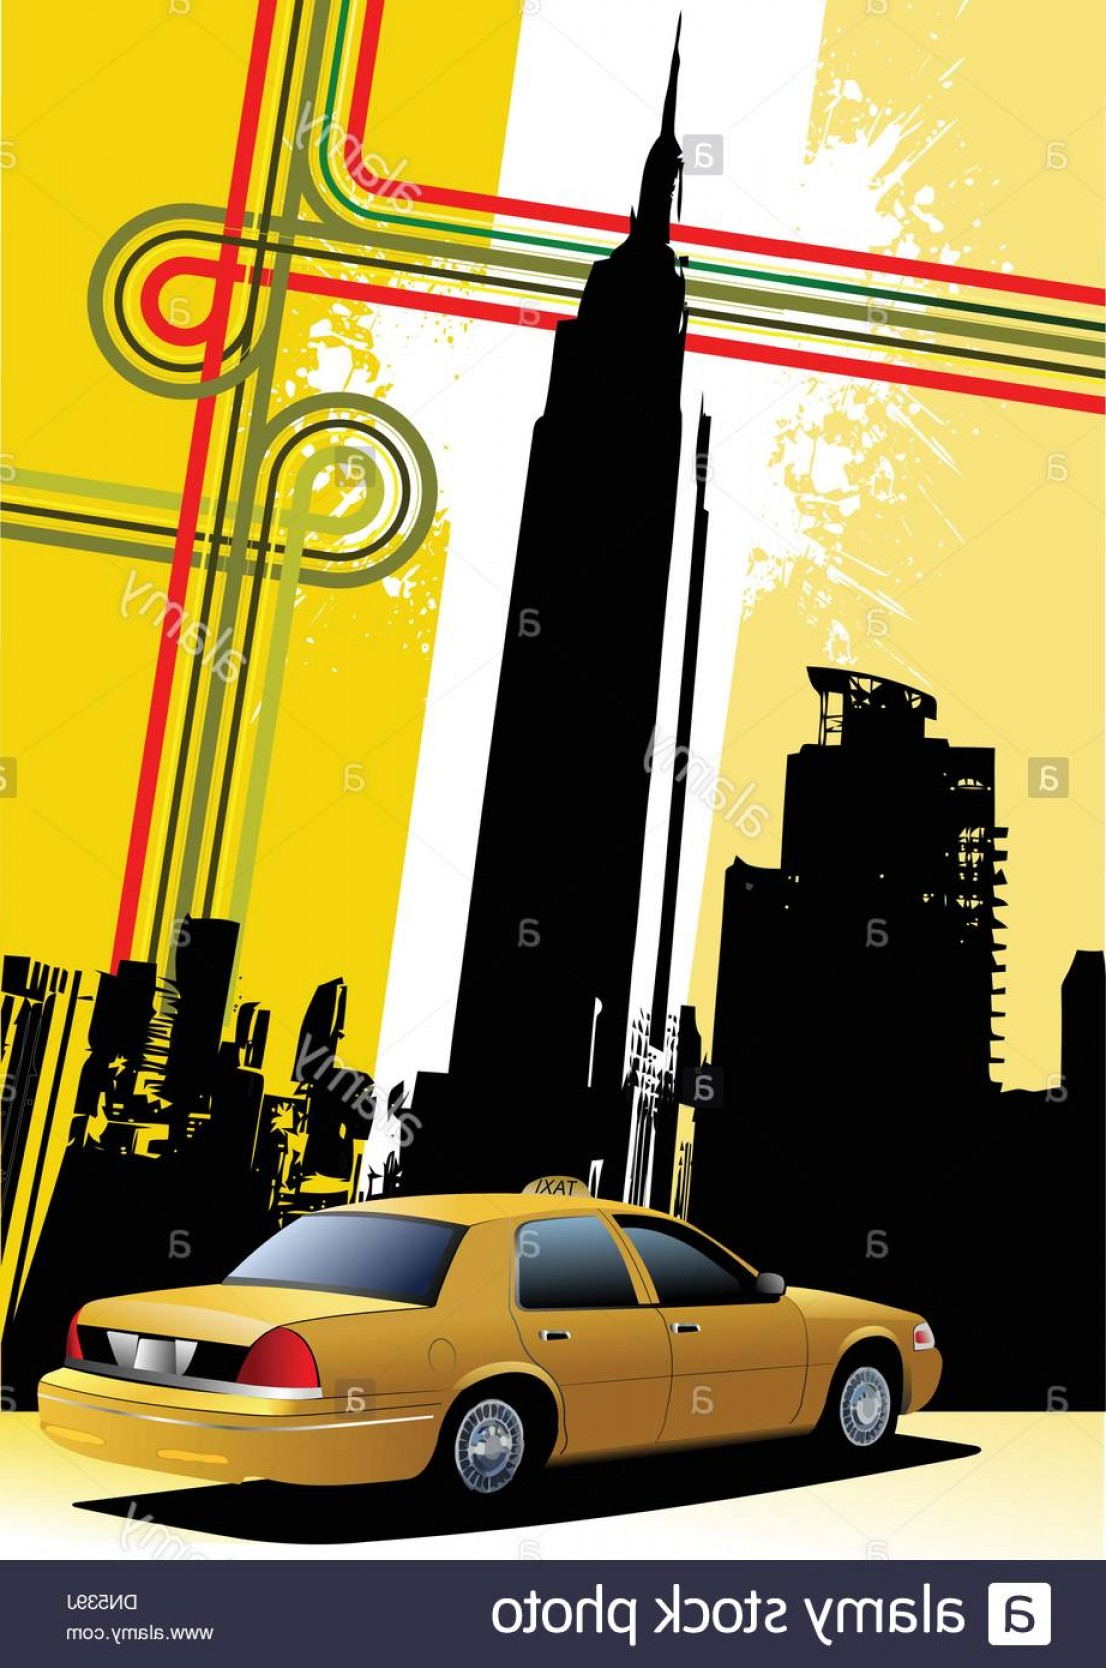 New York Taxi Cab Vector: Cover For Brochure With New York And Taxi Cab Images Image